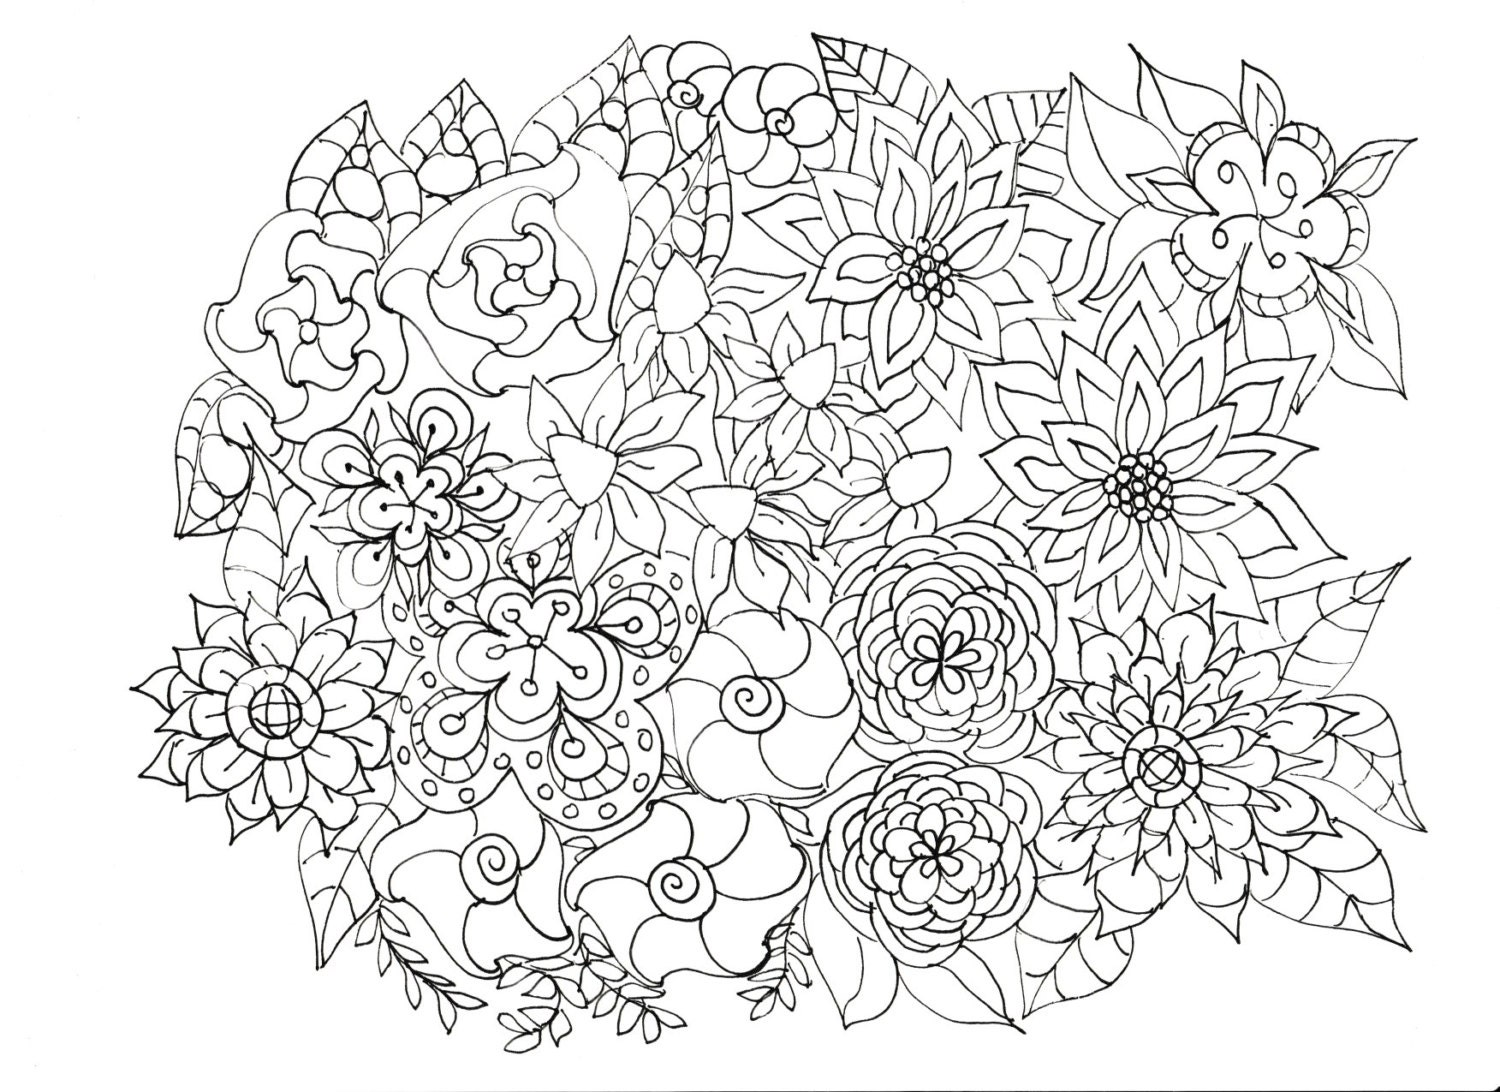 Flower Colouring Pages For Children 2 additionally garden flower colouring pages for ren disney coloring 516604 furthermore BiaAL8jMT together with Disney Princess Flowers Coloring Pages moreover kiKBdLqij likewise  additionally a511cffccf6d5d94b4e8f061a308a1e5 besides 0 884 besides  moreover barbie 2Bin 2Bflower 2Bgarden 2Bcoloring 2Bpages further . on disney coloring pages garden flower